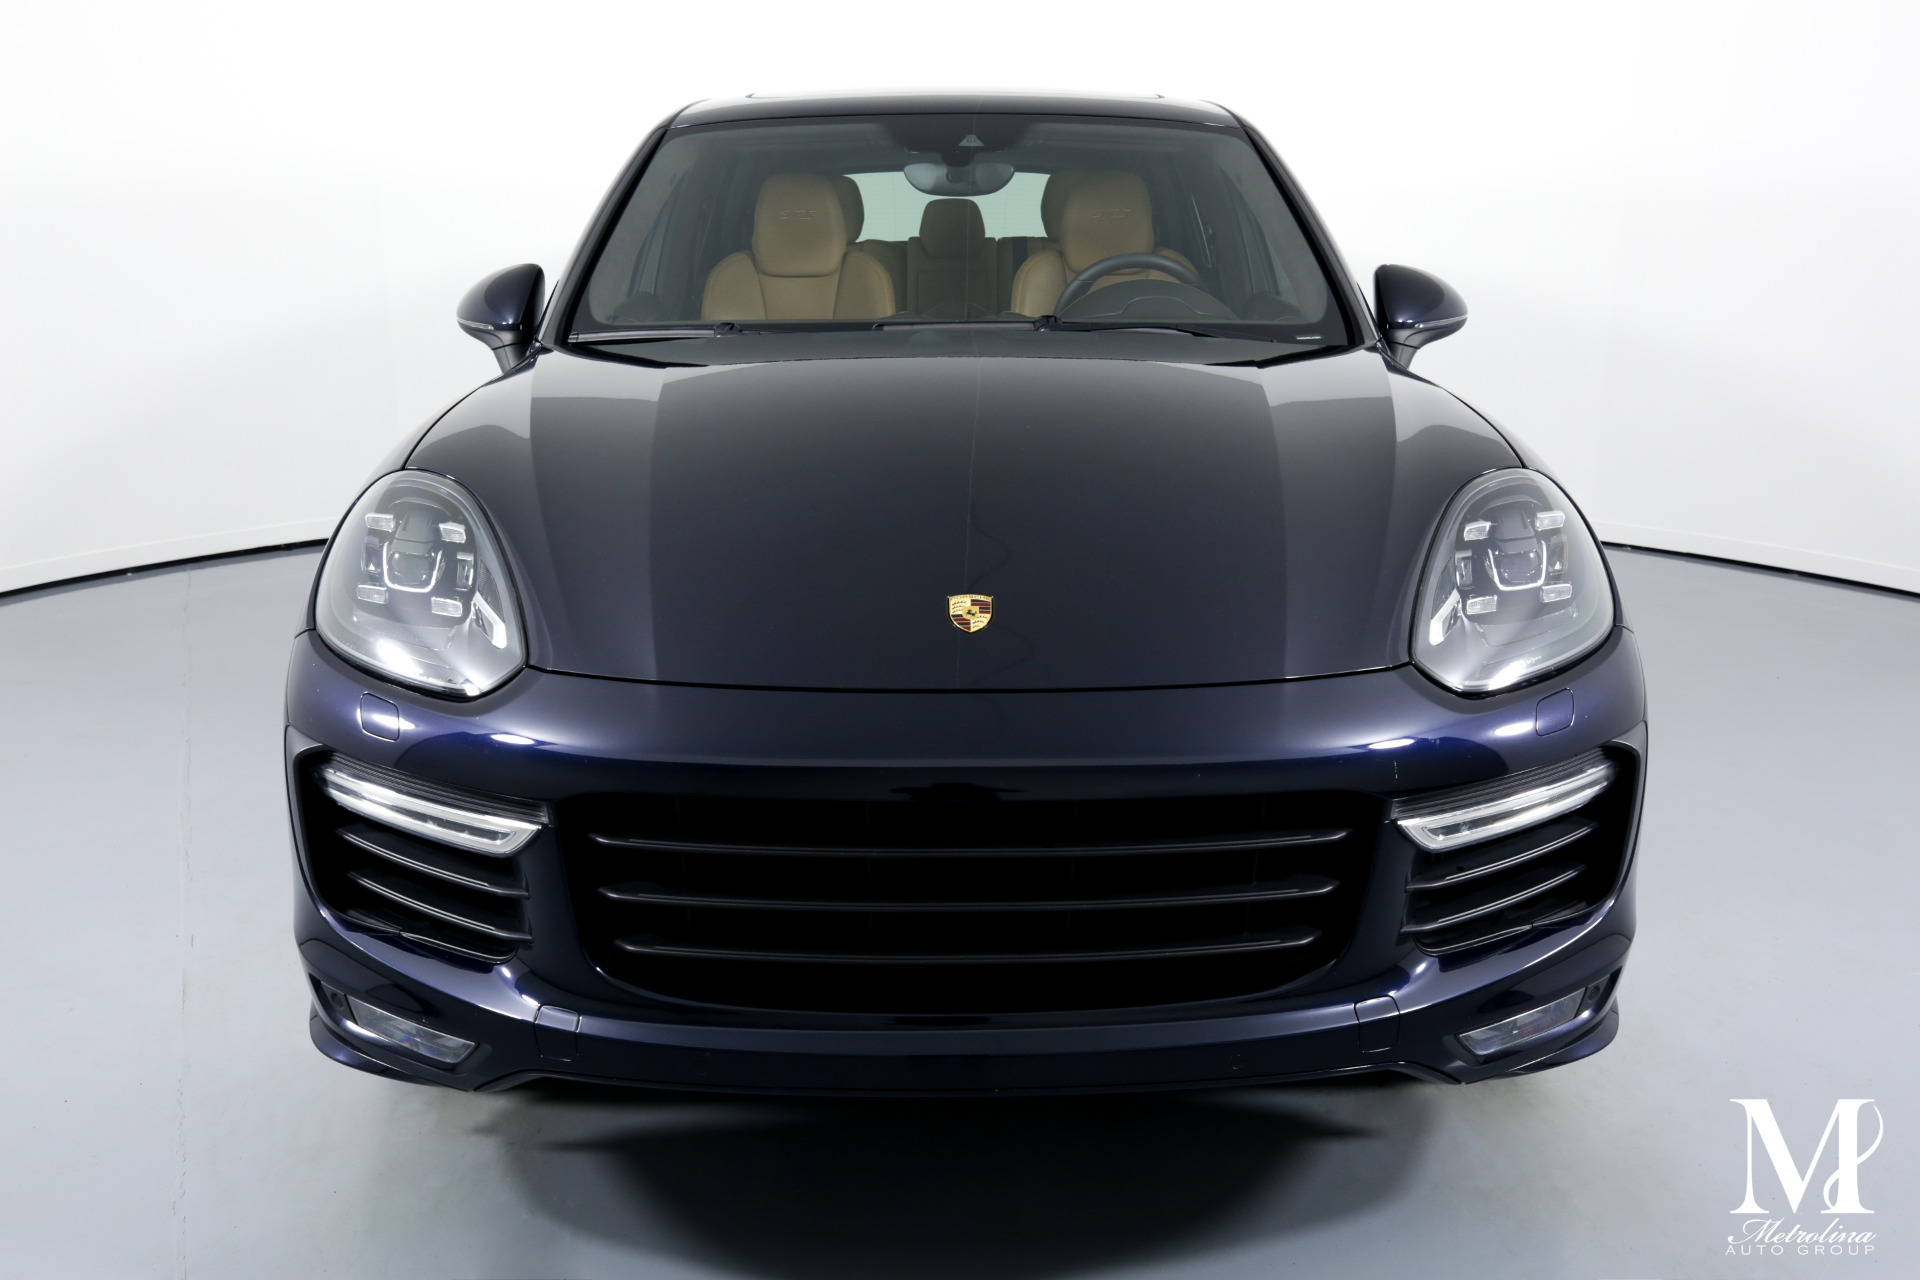 Used 2016 Porsche Cayenne GTS for sale $42,996 at Metrolina Auto Group in Charlotte NC 28217 - 3